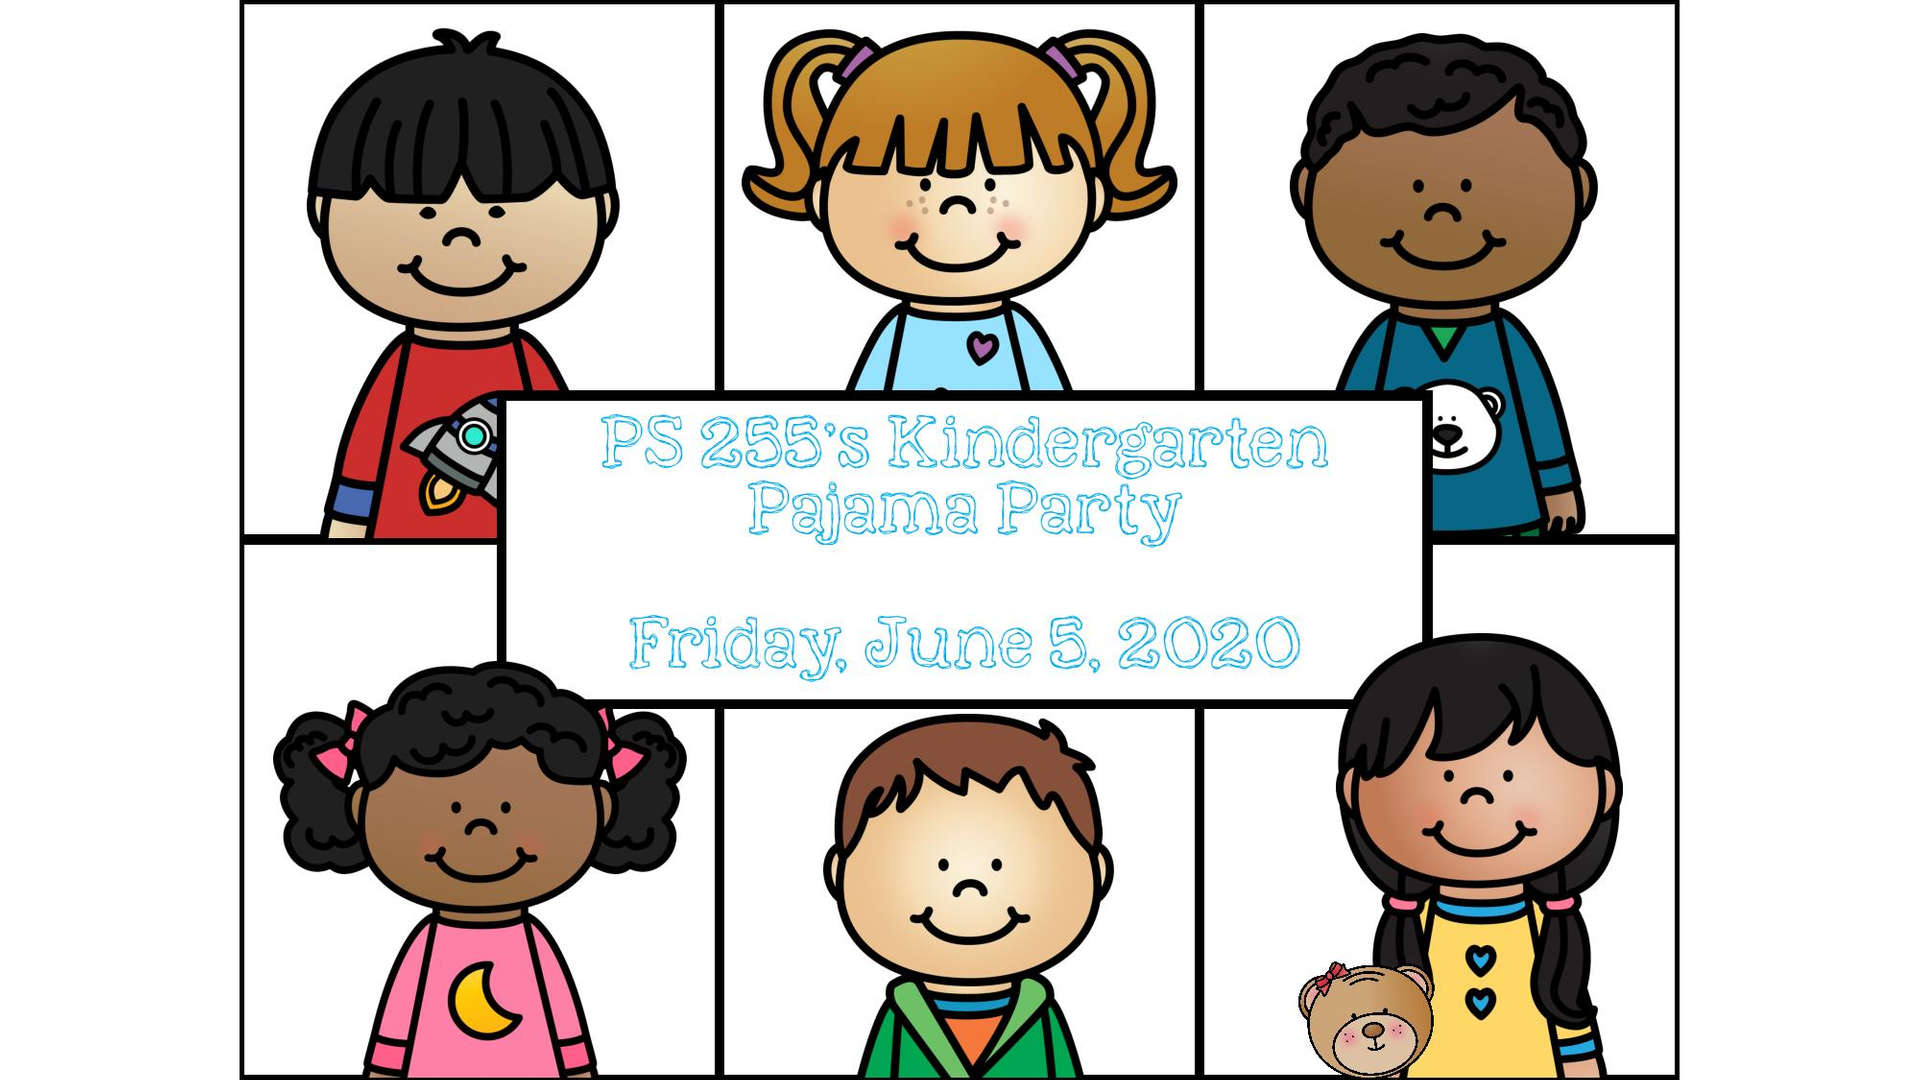 sign that we sent to the families about the pajama party